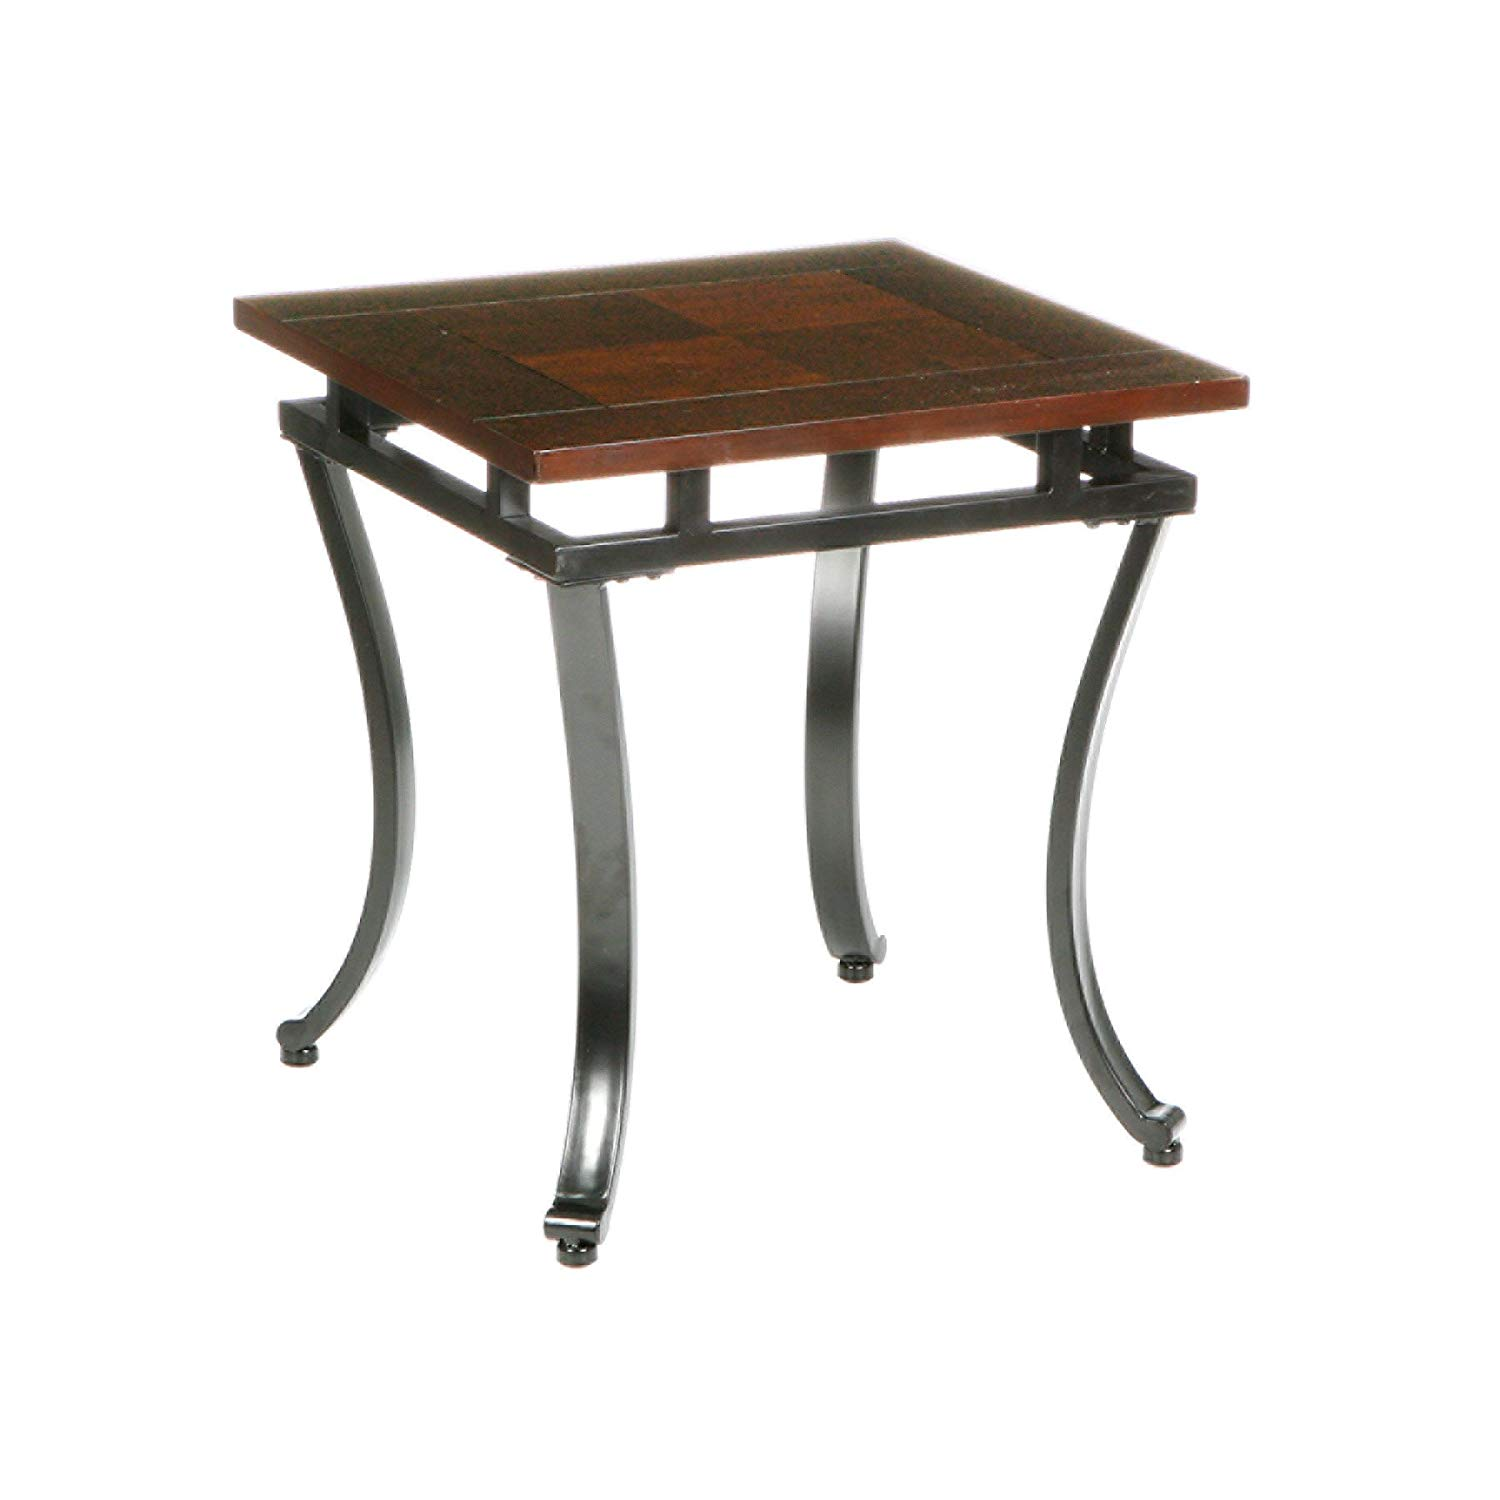 southern enterprises modesto end table espresso finish uqk rwl kitchen dining inch tall console mission style coffee and tables what time does homesense close today the calendar